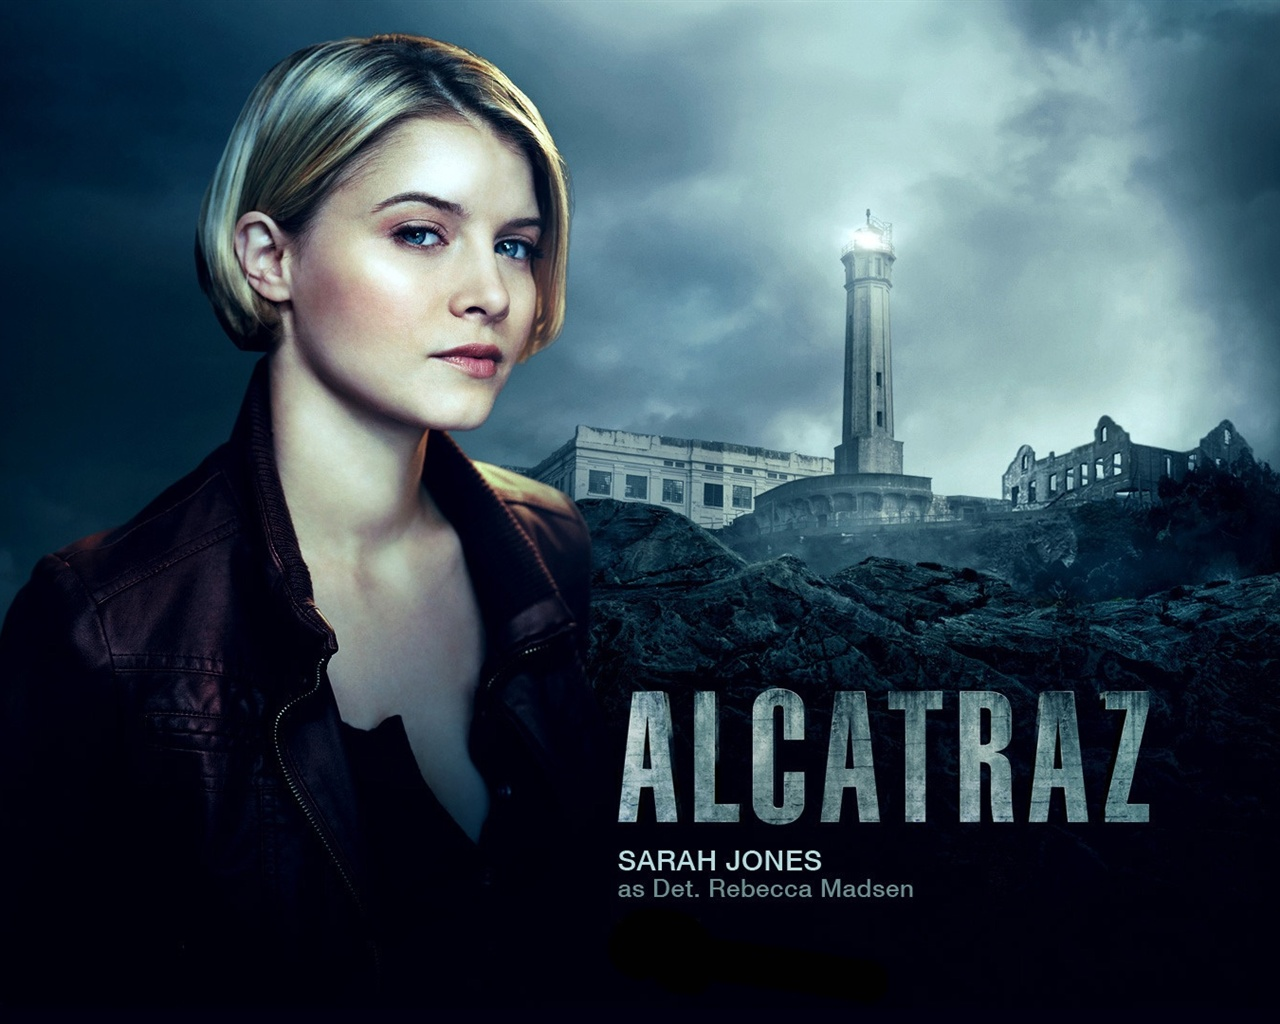 Sarah Jones in Alcatraz wallpaper - 1280x1024